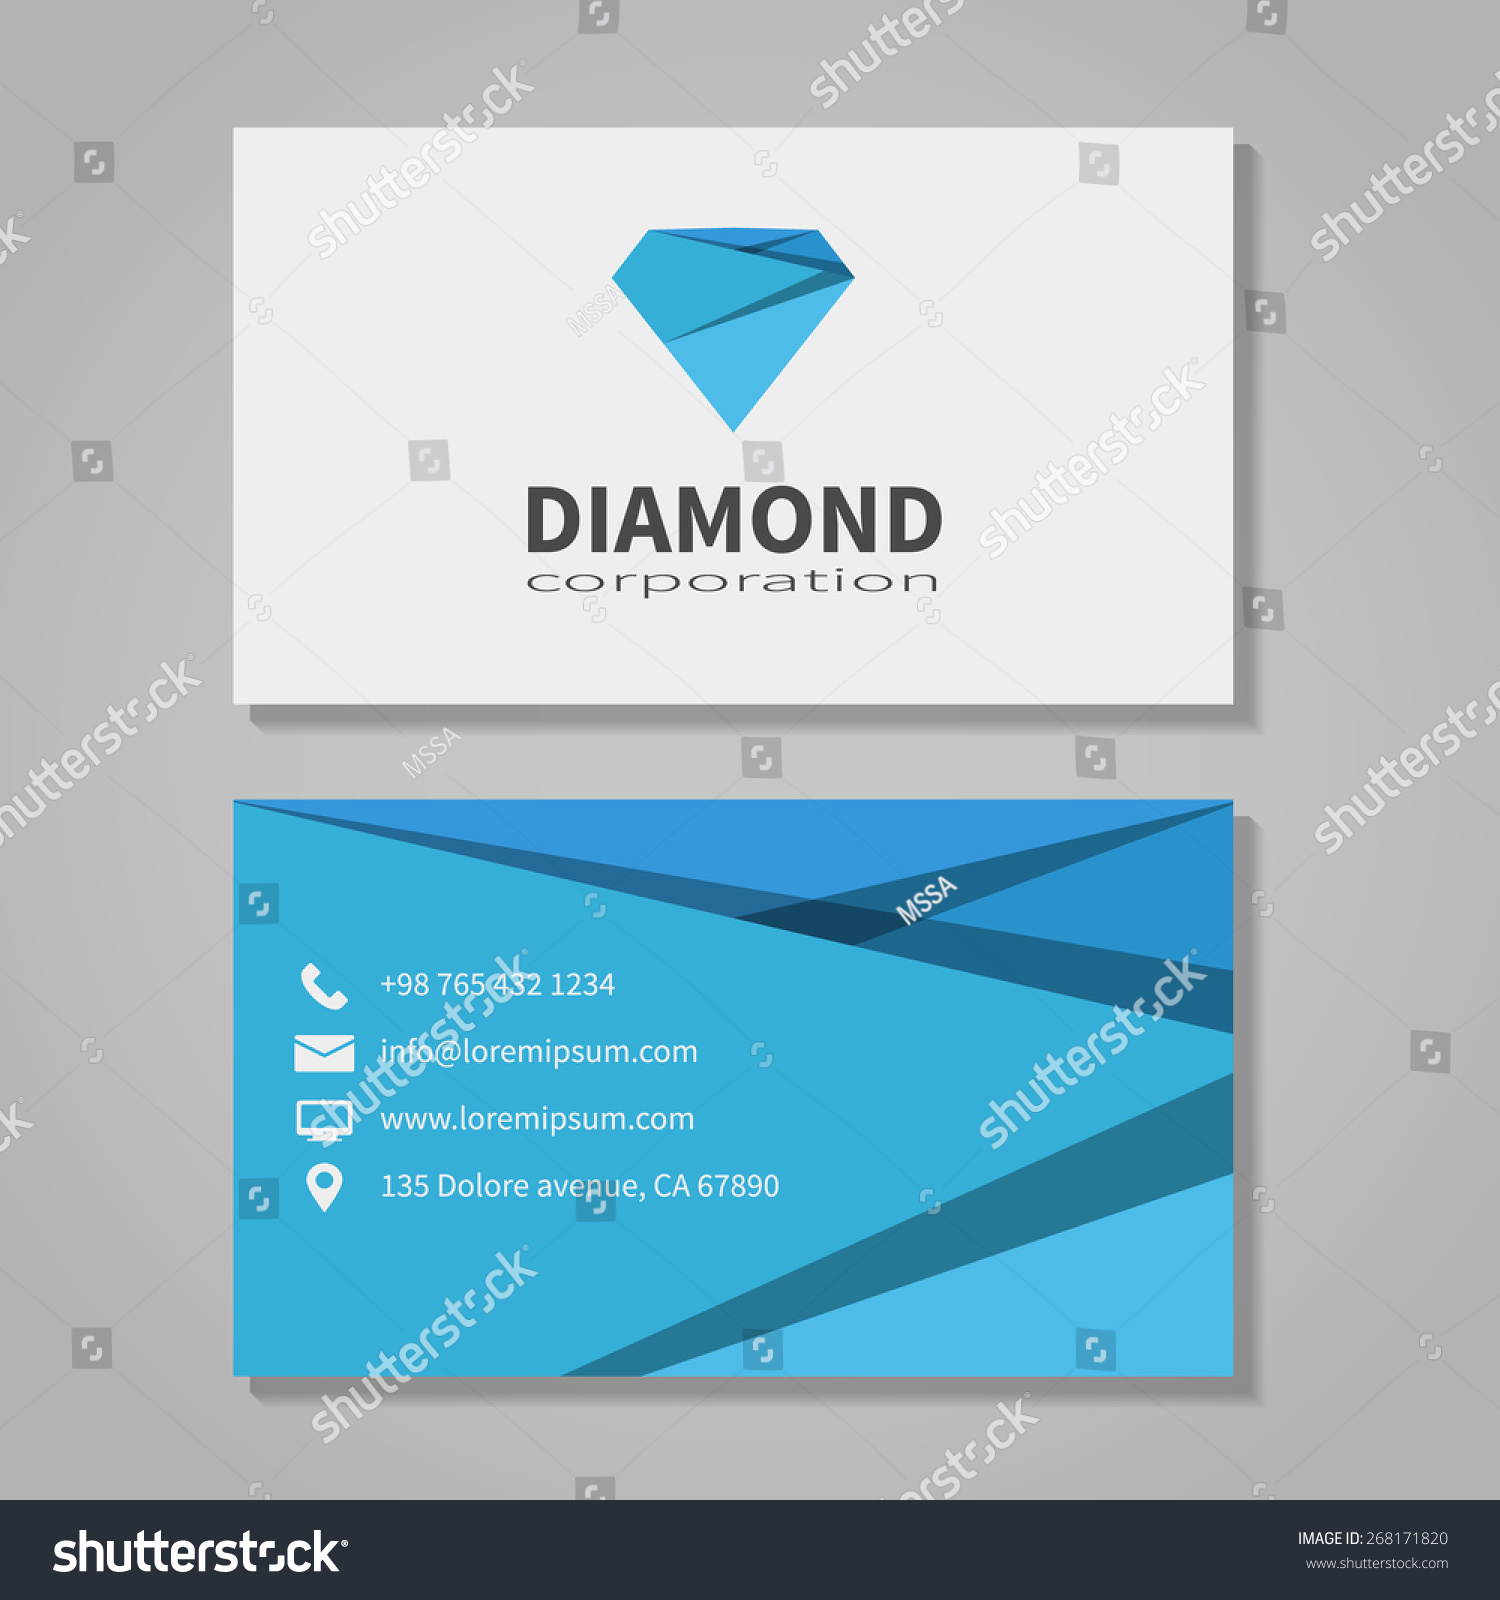 diamond corporation business card template in modern style office and visit phone number